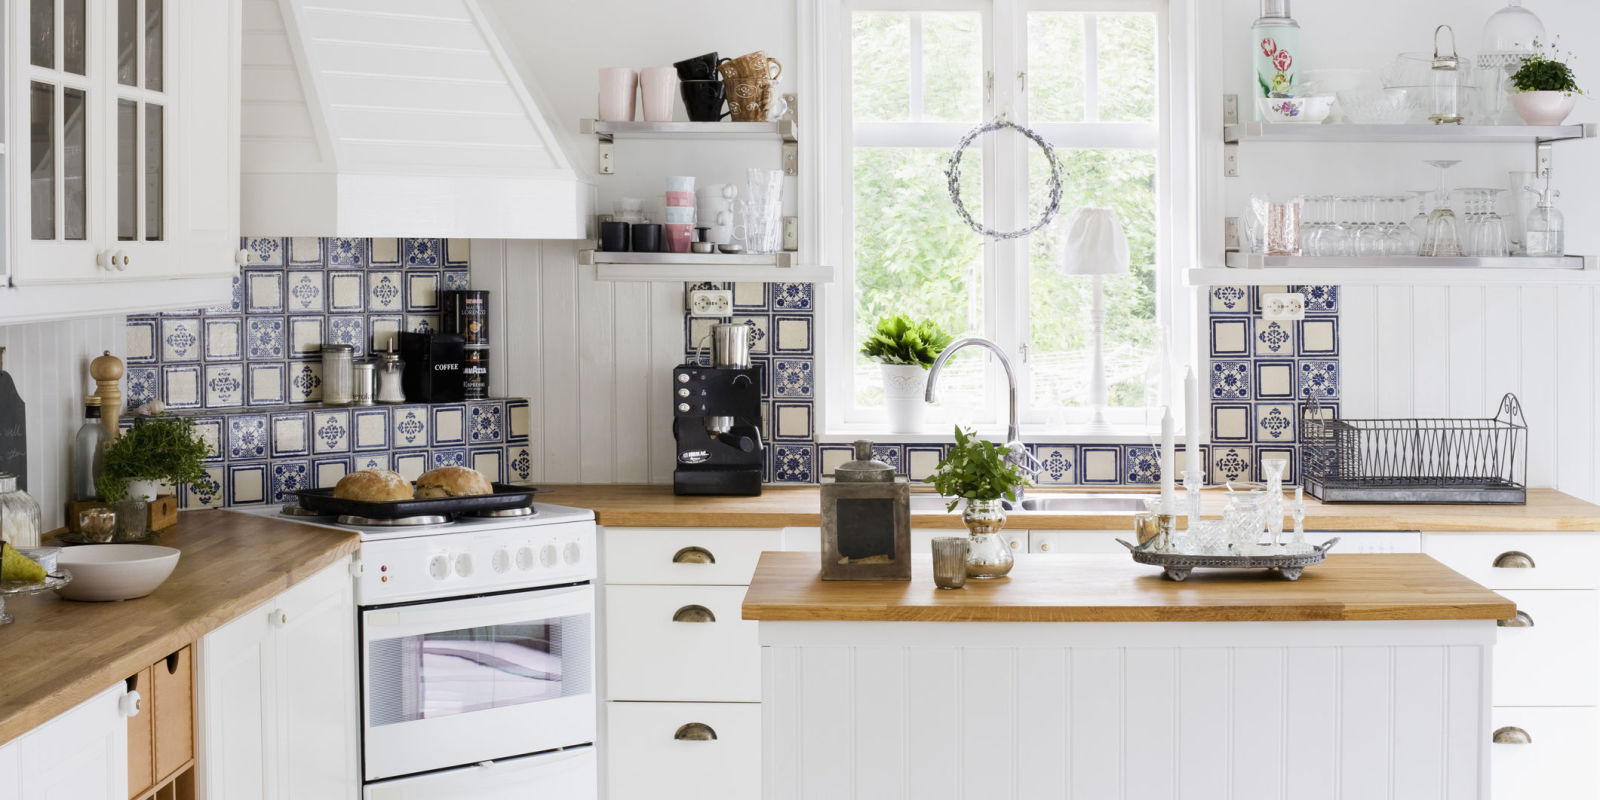 5 steps to creating a scandinavian kitchen. Black Bedroom Furniture Sets. Home Design Ideas